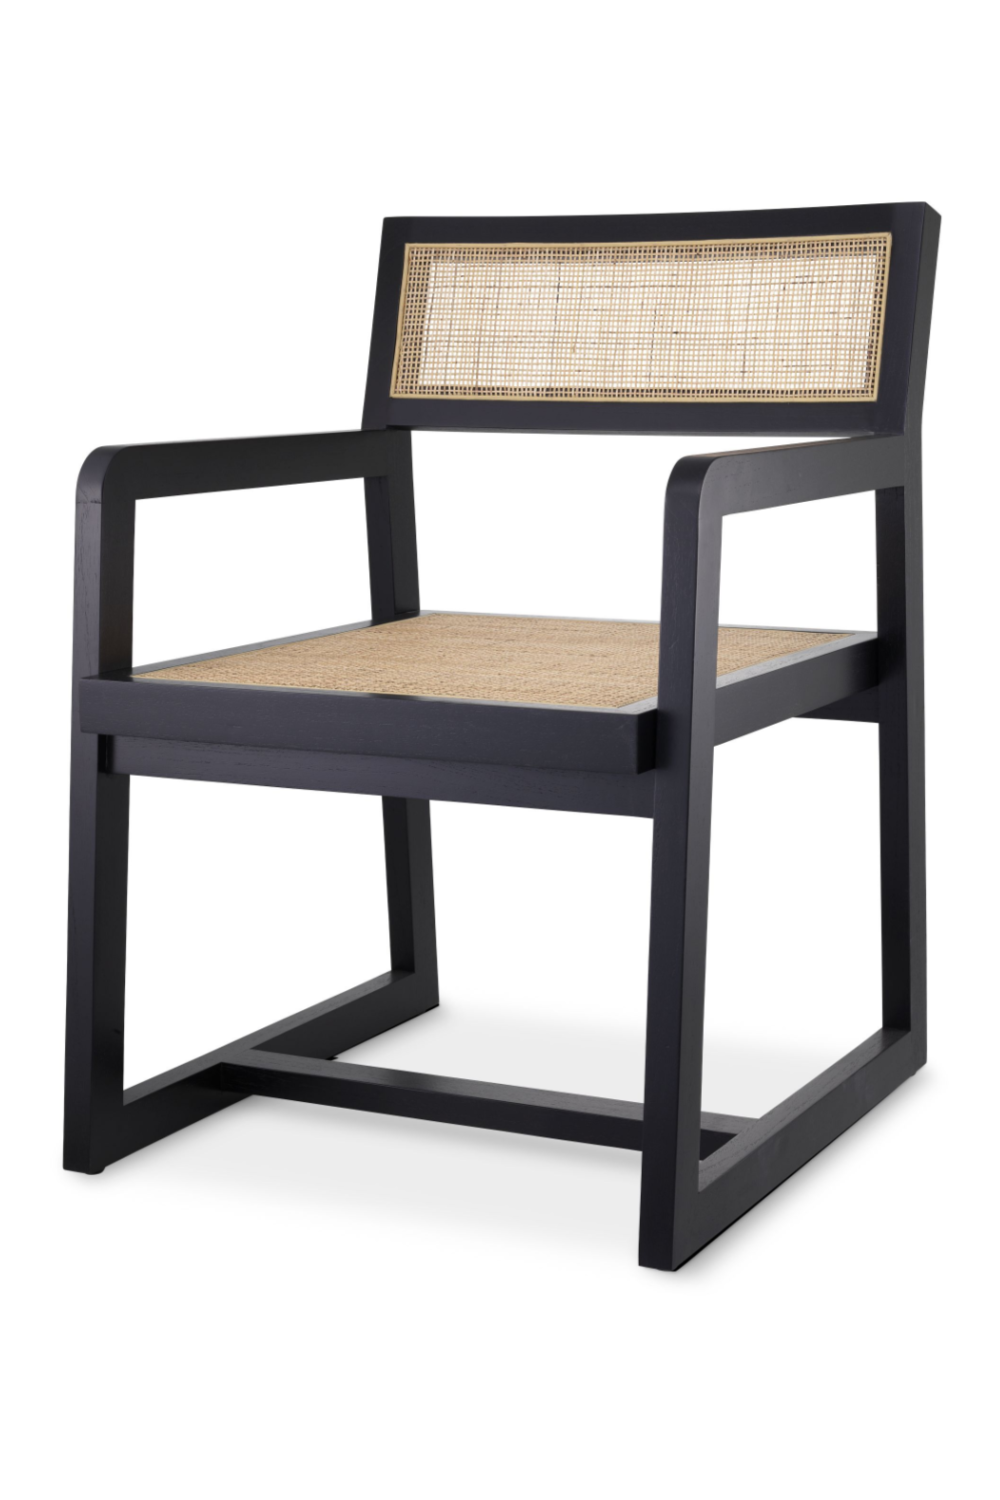 Black Rattan Dining Armchair | Eichholtz Dinant | Woodfurniture.com